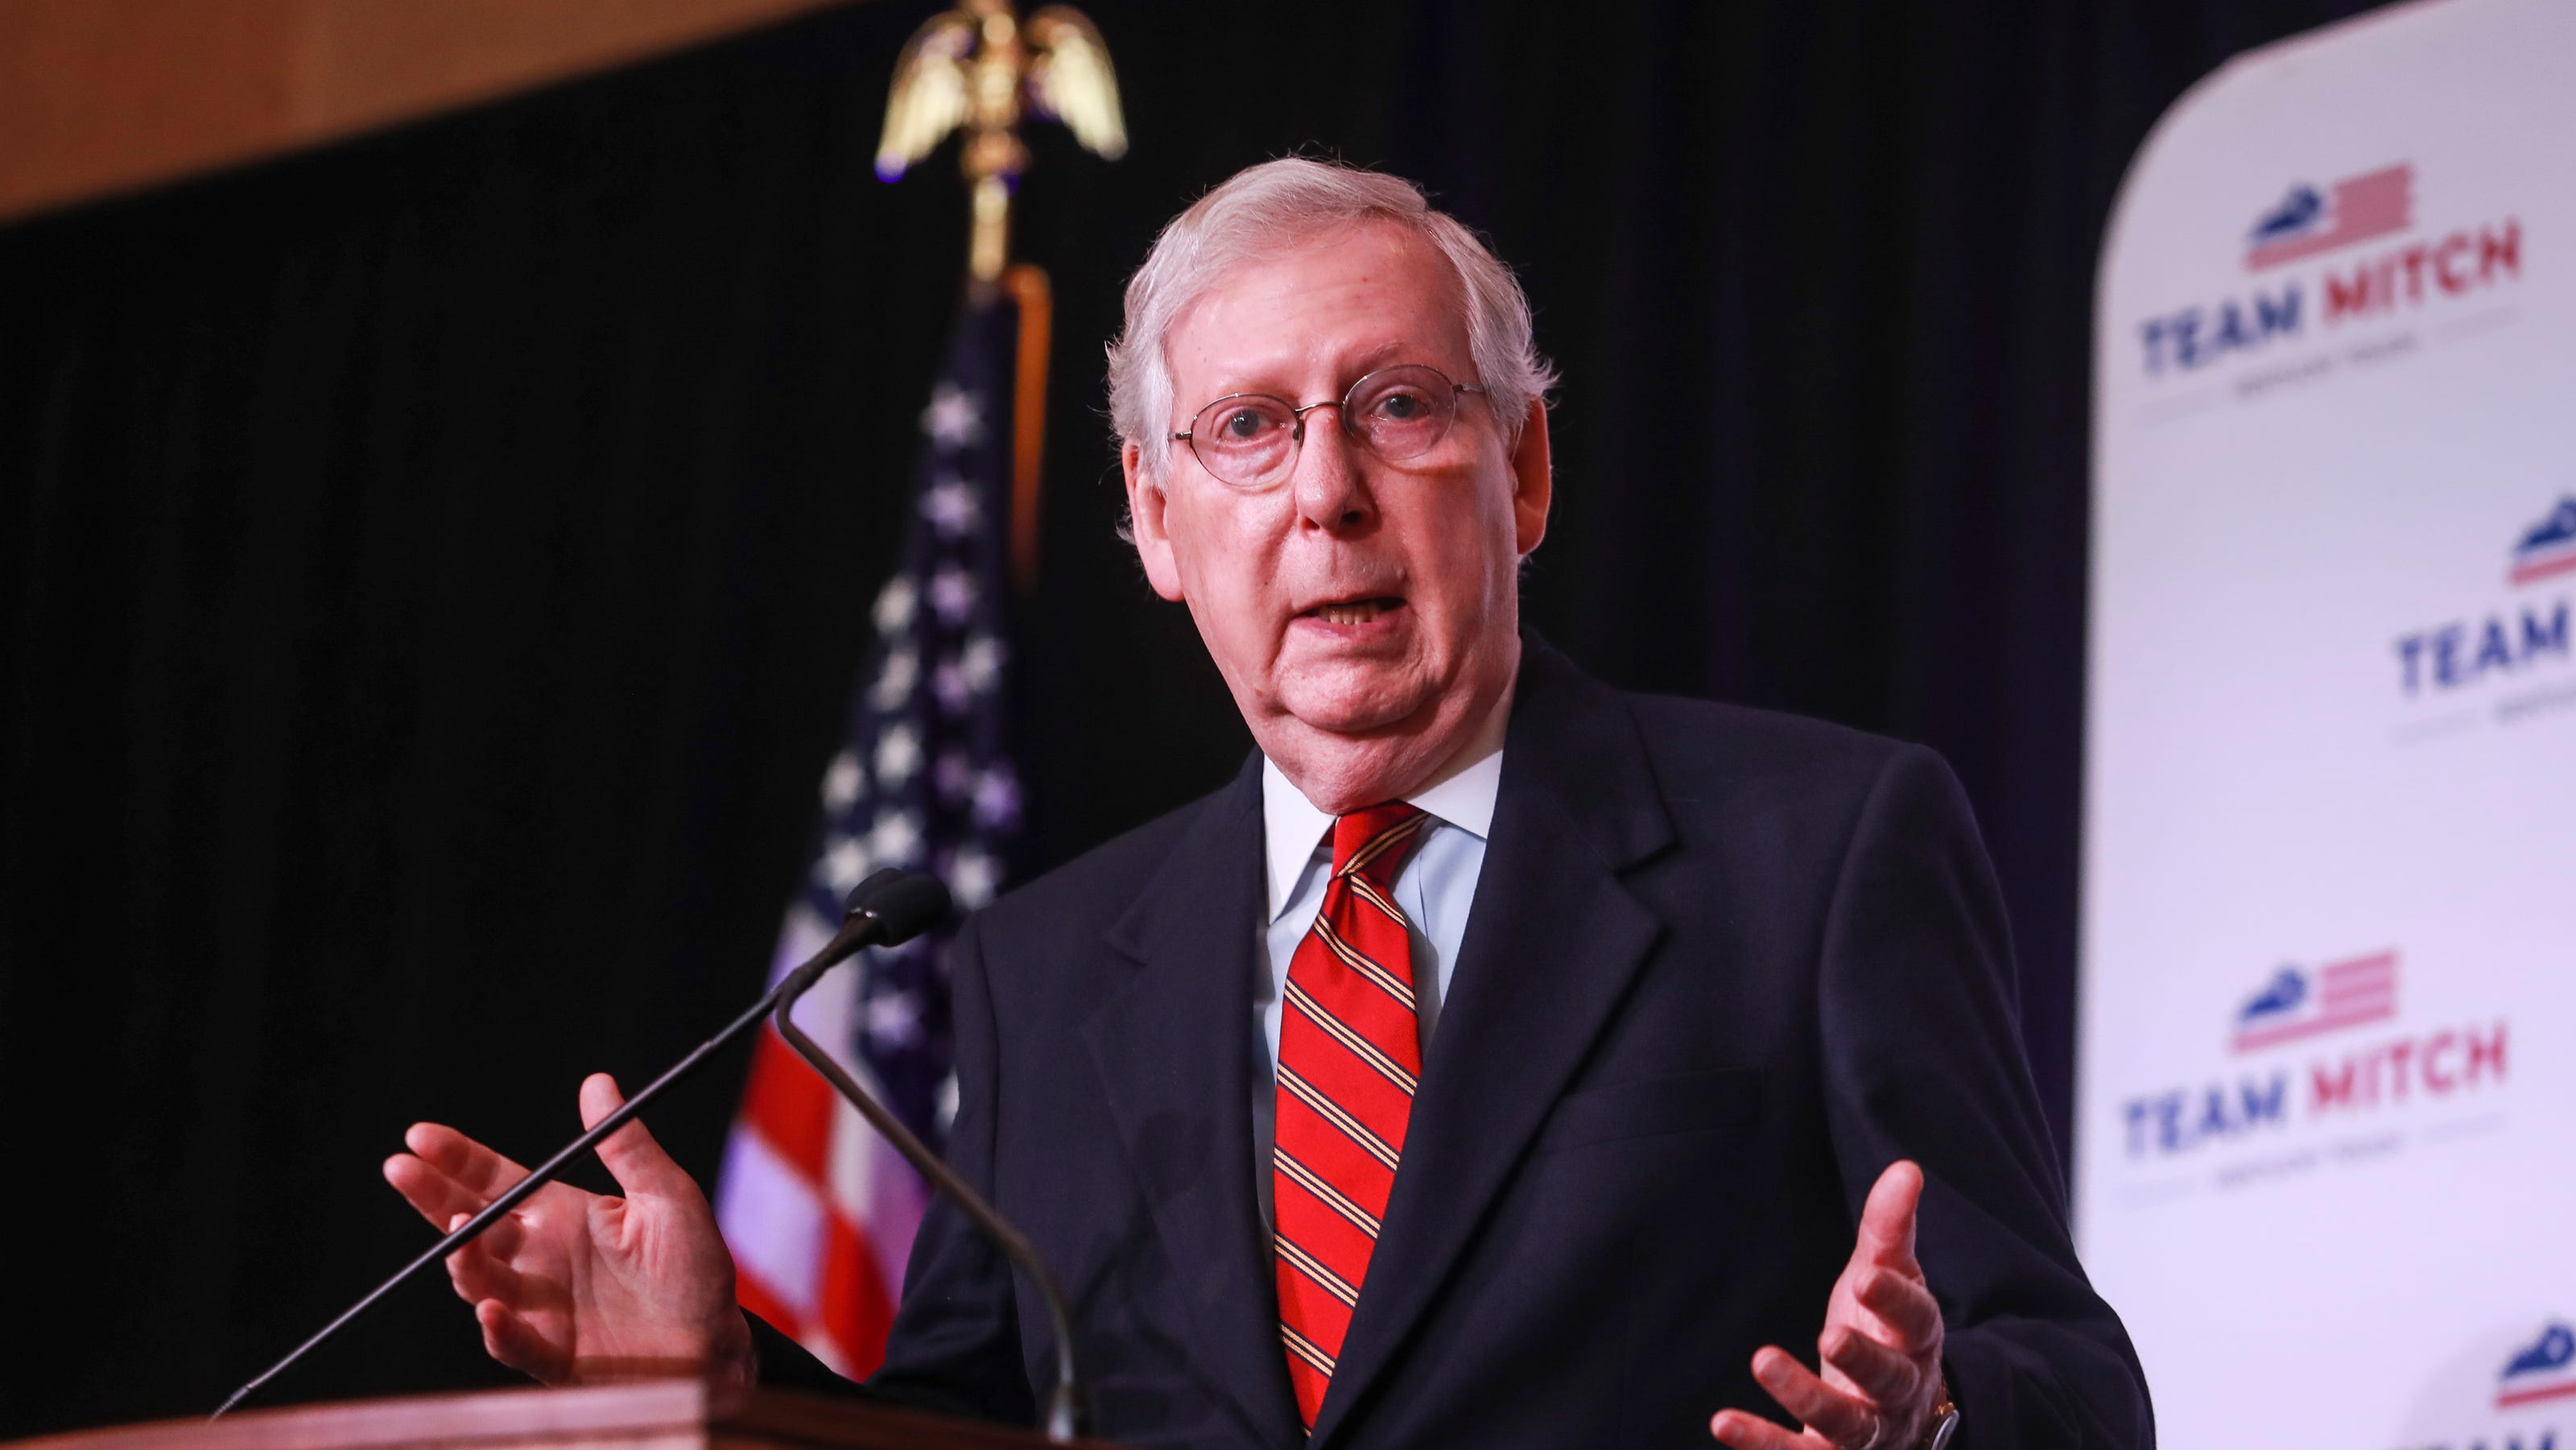 Mitch McConnell's 2020 Senate race proves his popularity in Kentucky